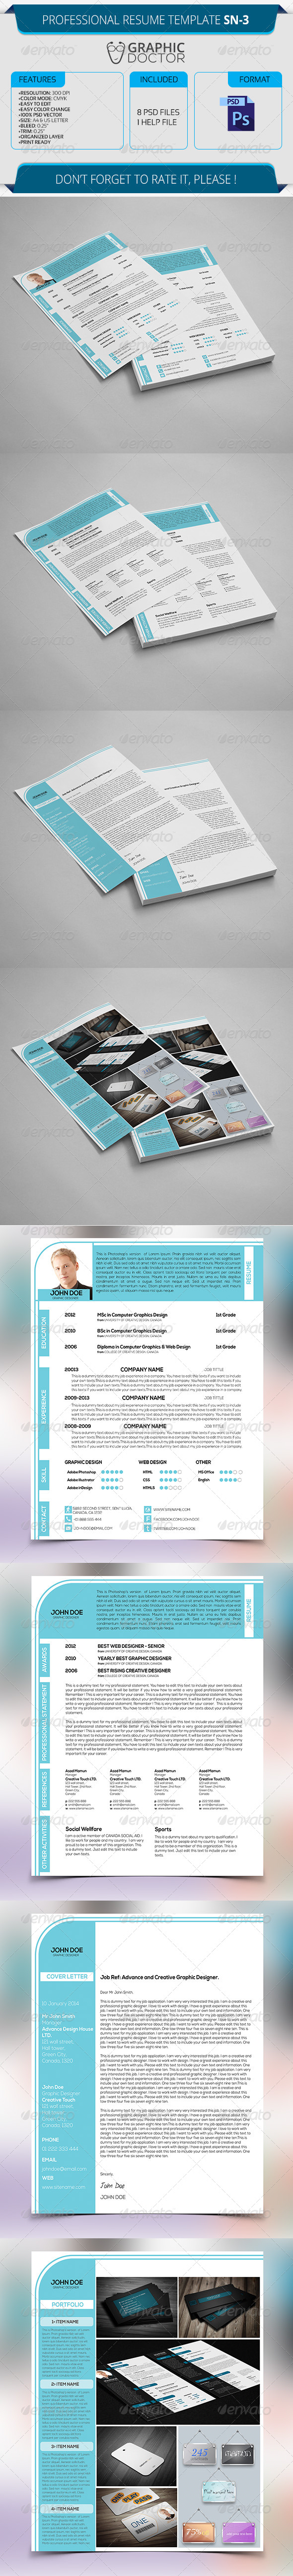 Professional Resume Template SN-3 - Resumes Stationery